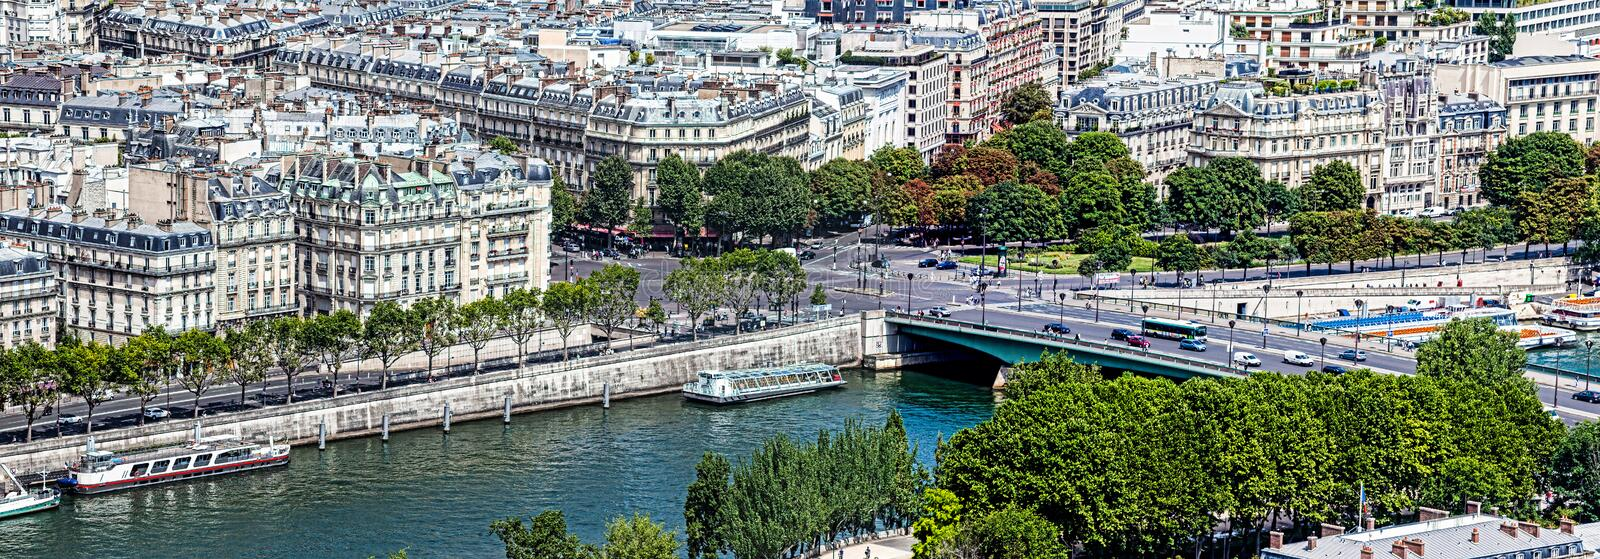 A Paris day. A view of Paris and the apartments on the river from the Eiffel tower on a sunny summers day stock images